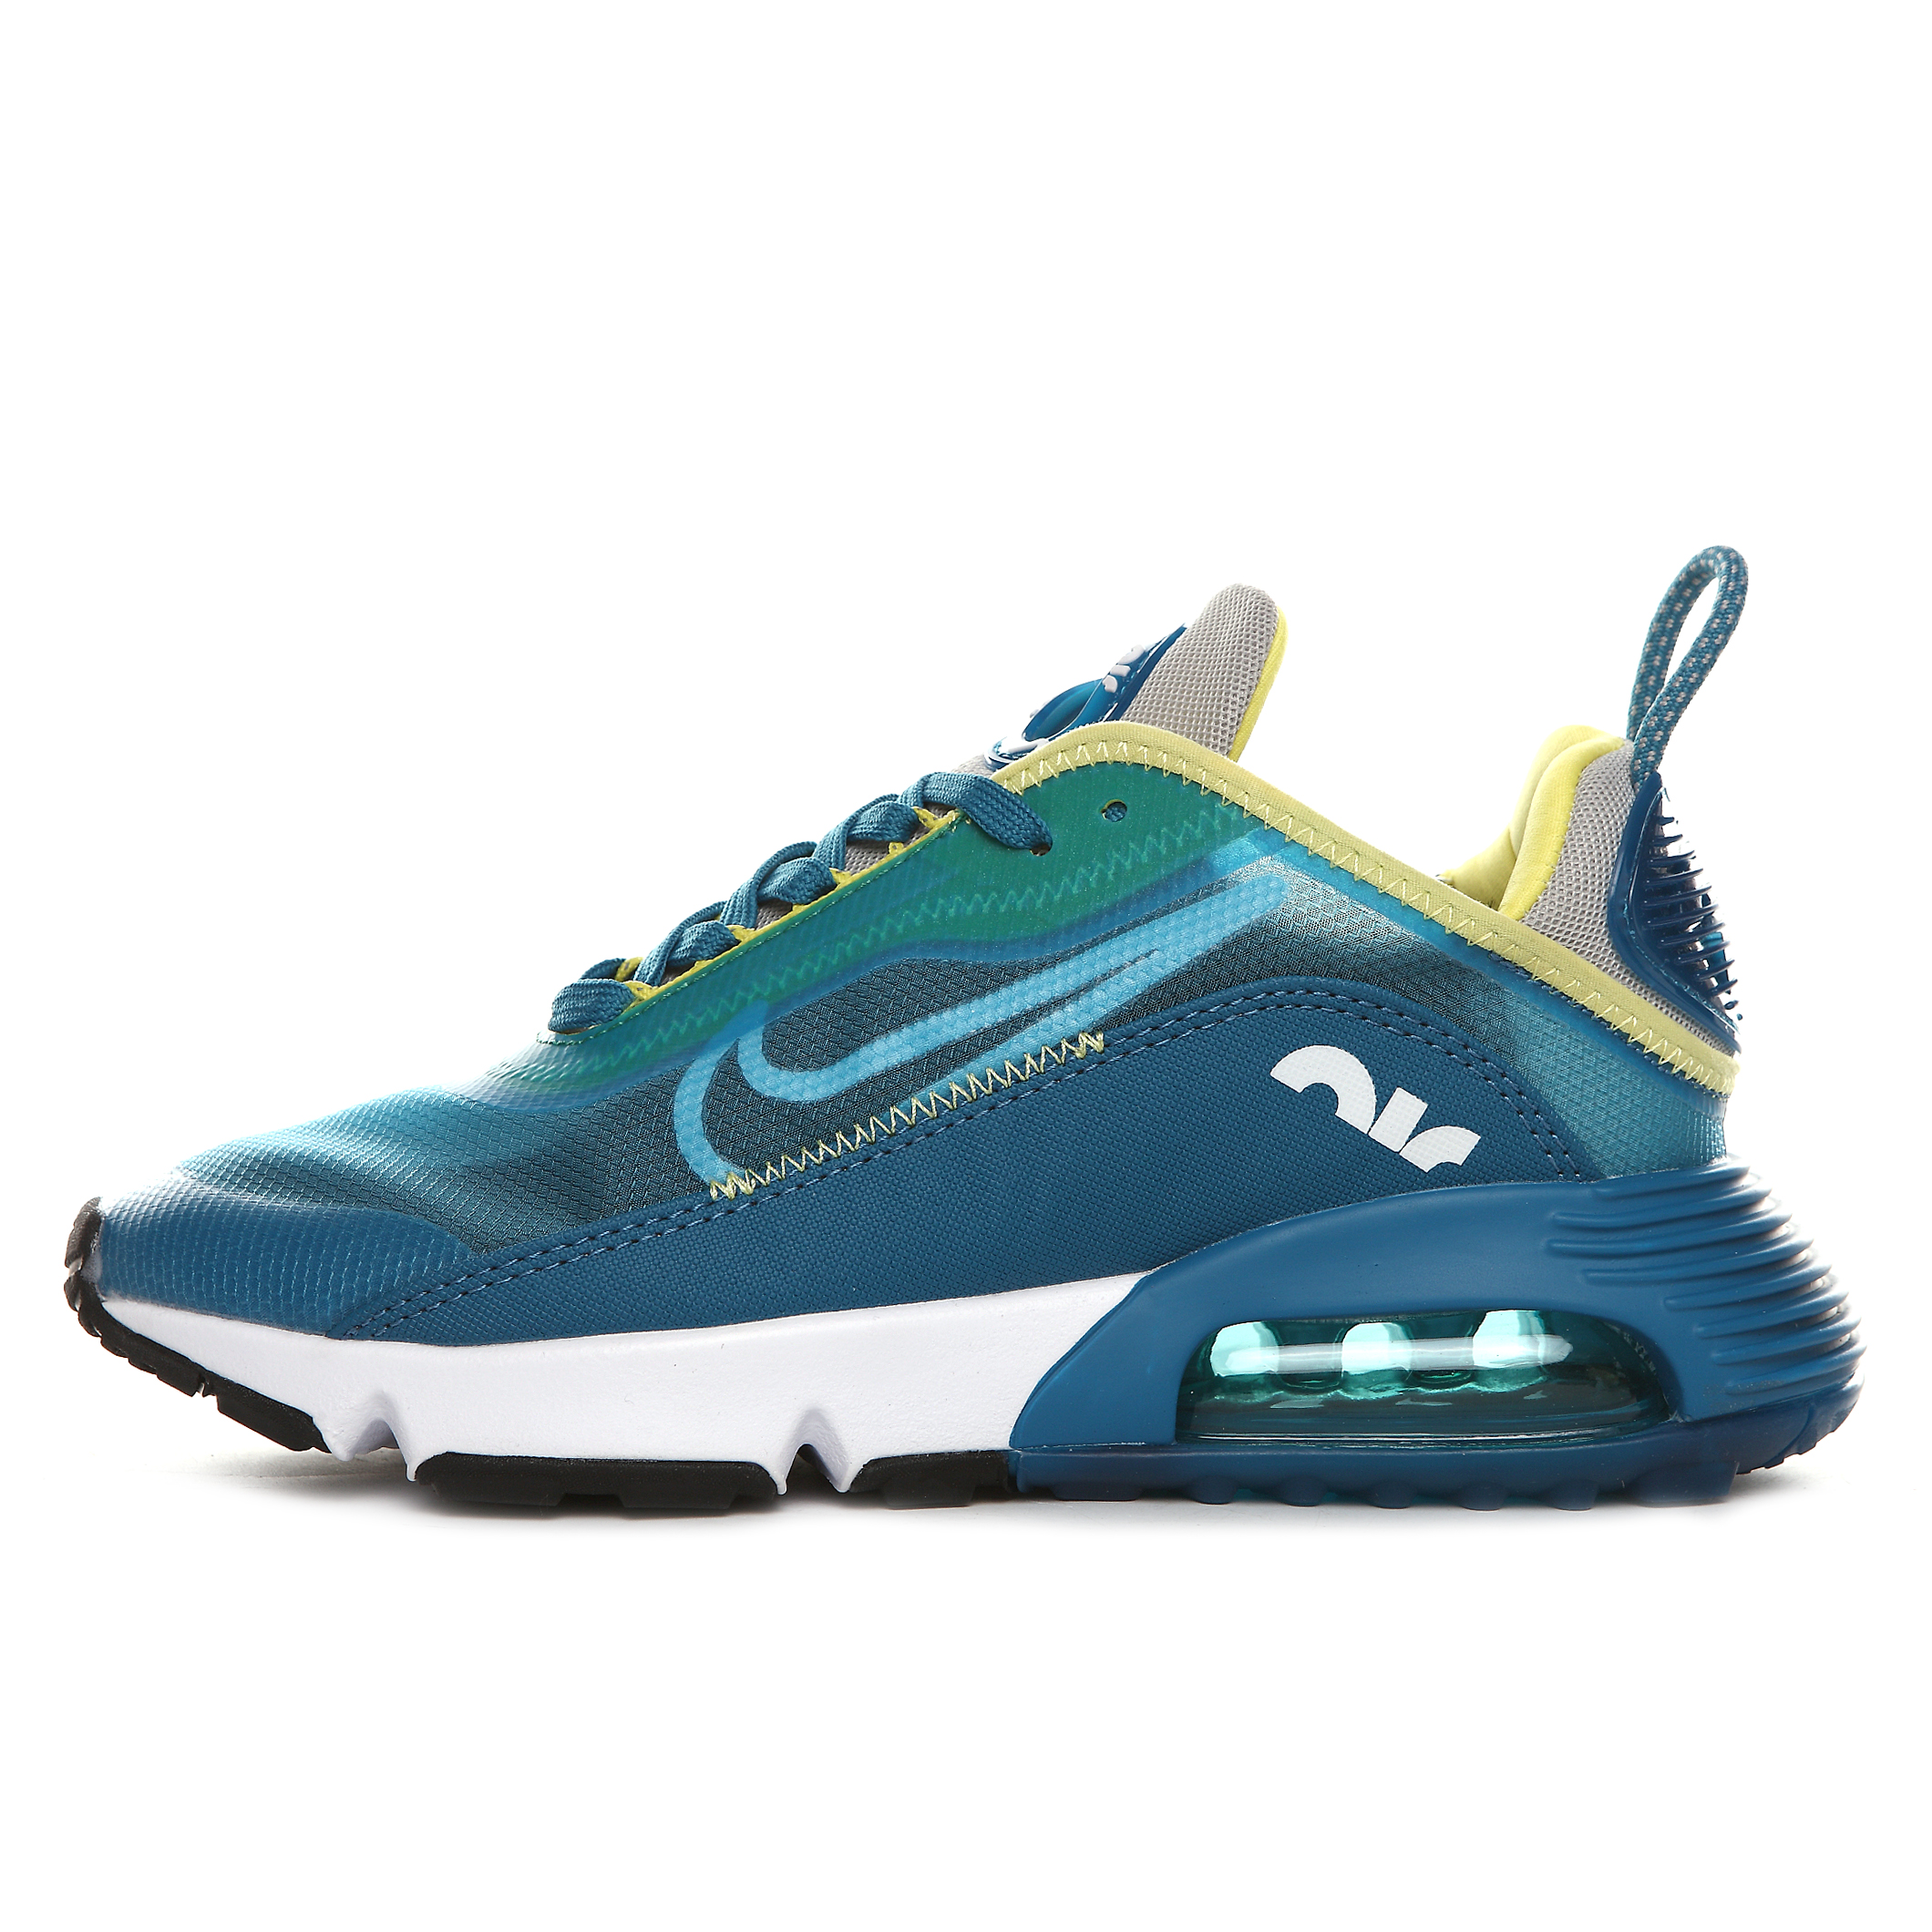 Men's Running weapon Air Max 90 Shoes 062